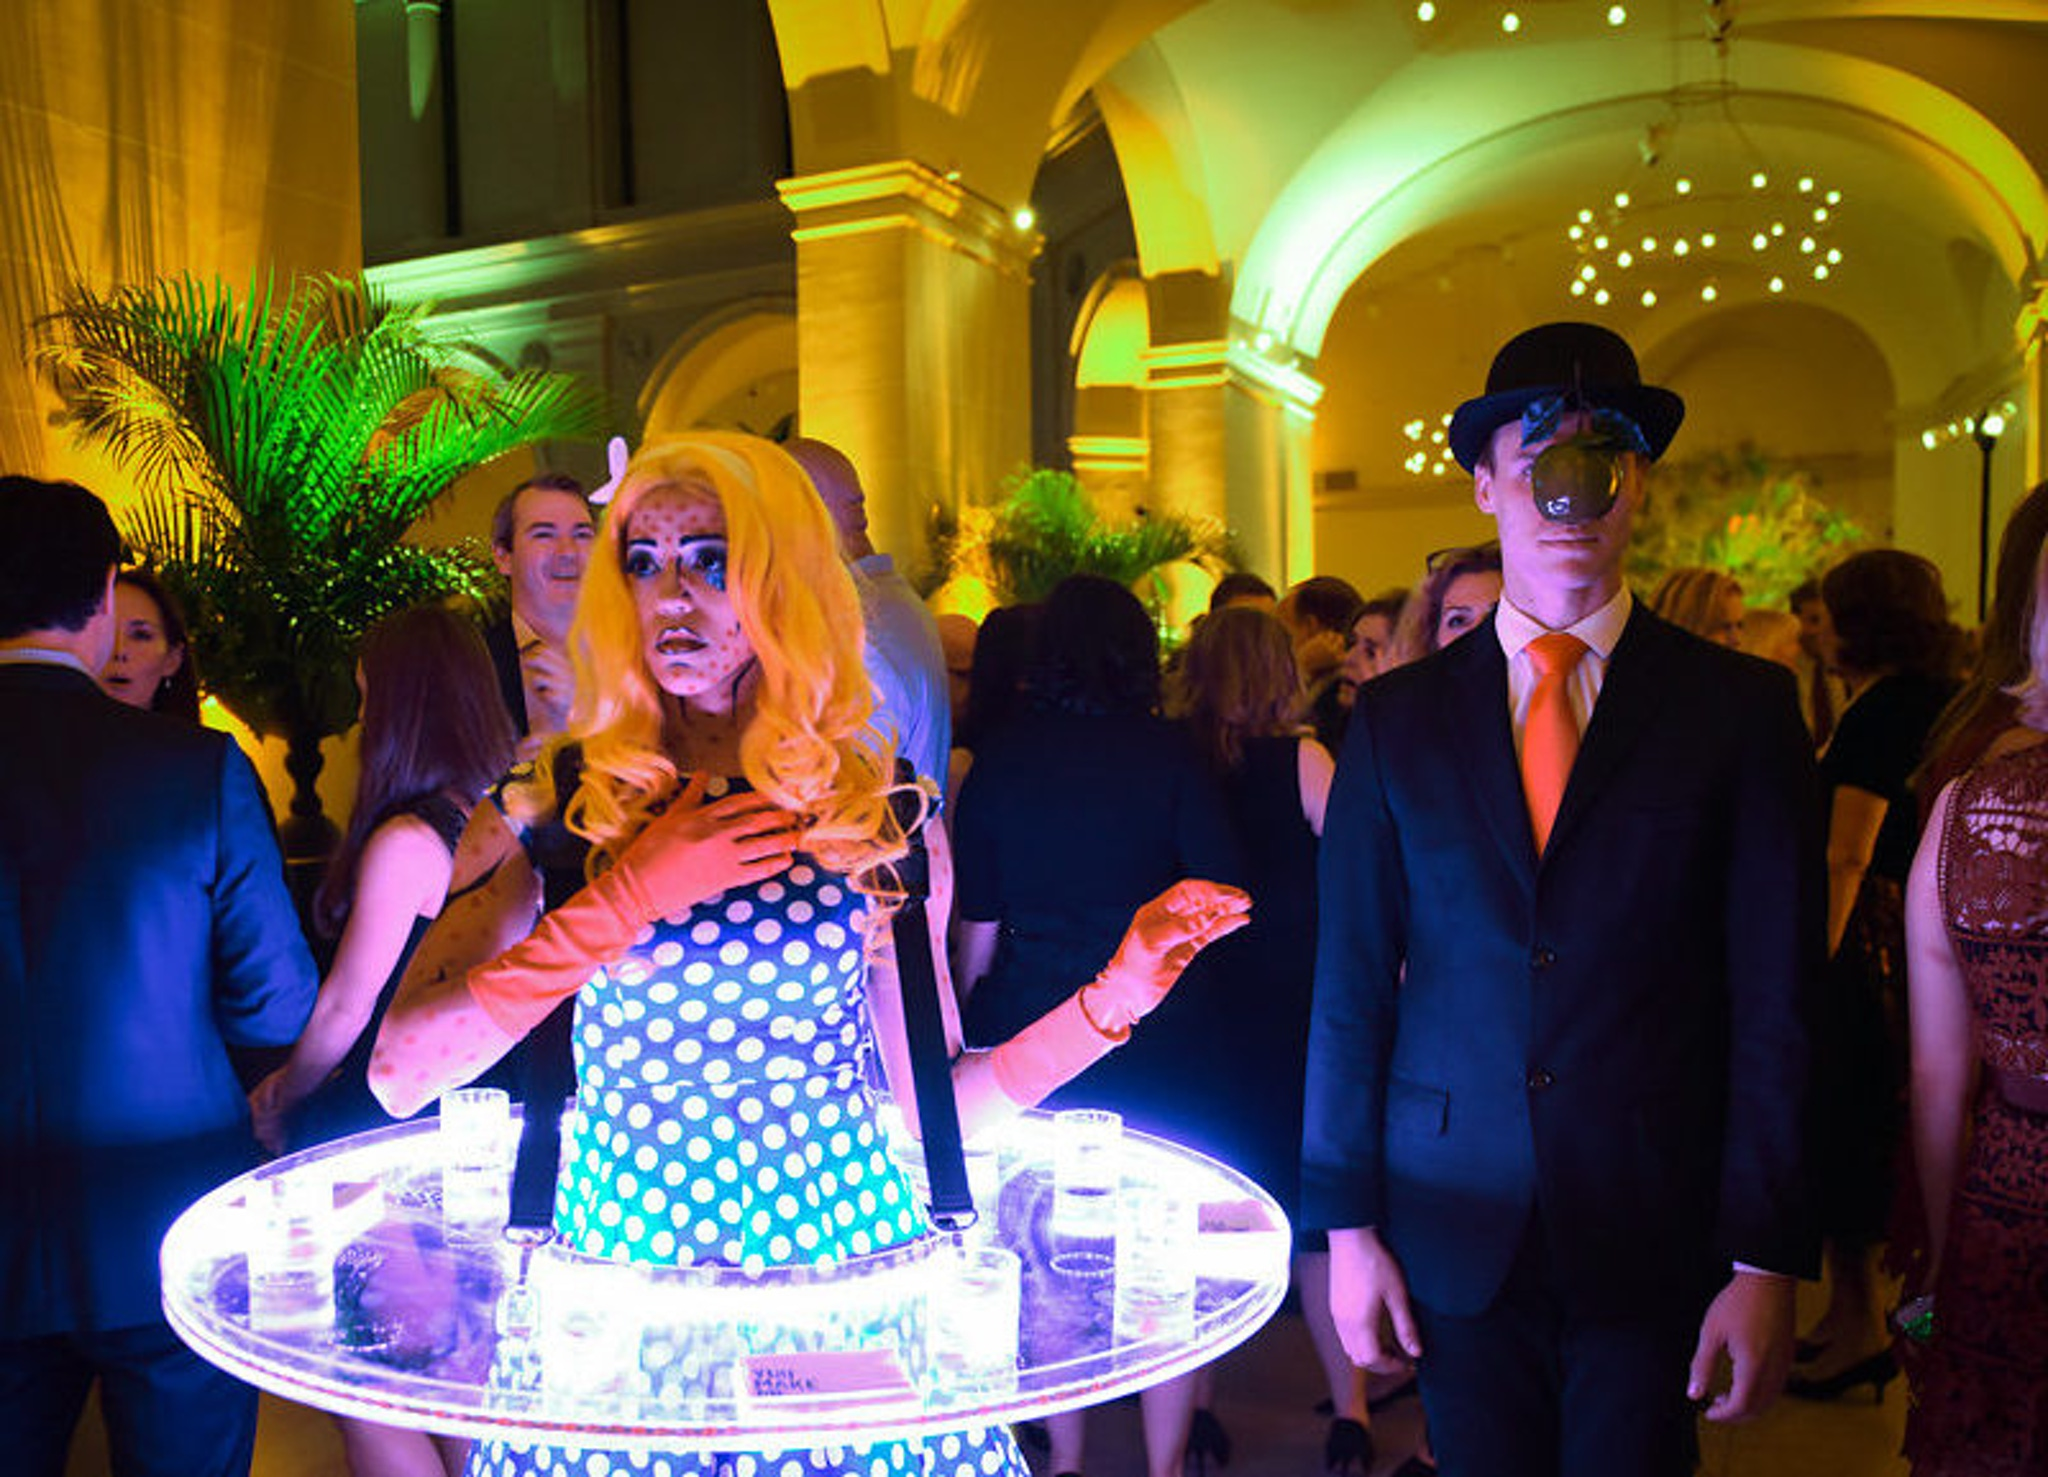 Modern art themed venue in New York with celebrity replicas